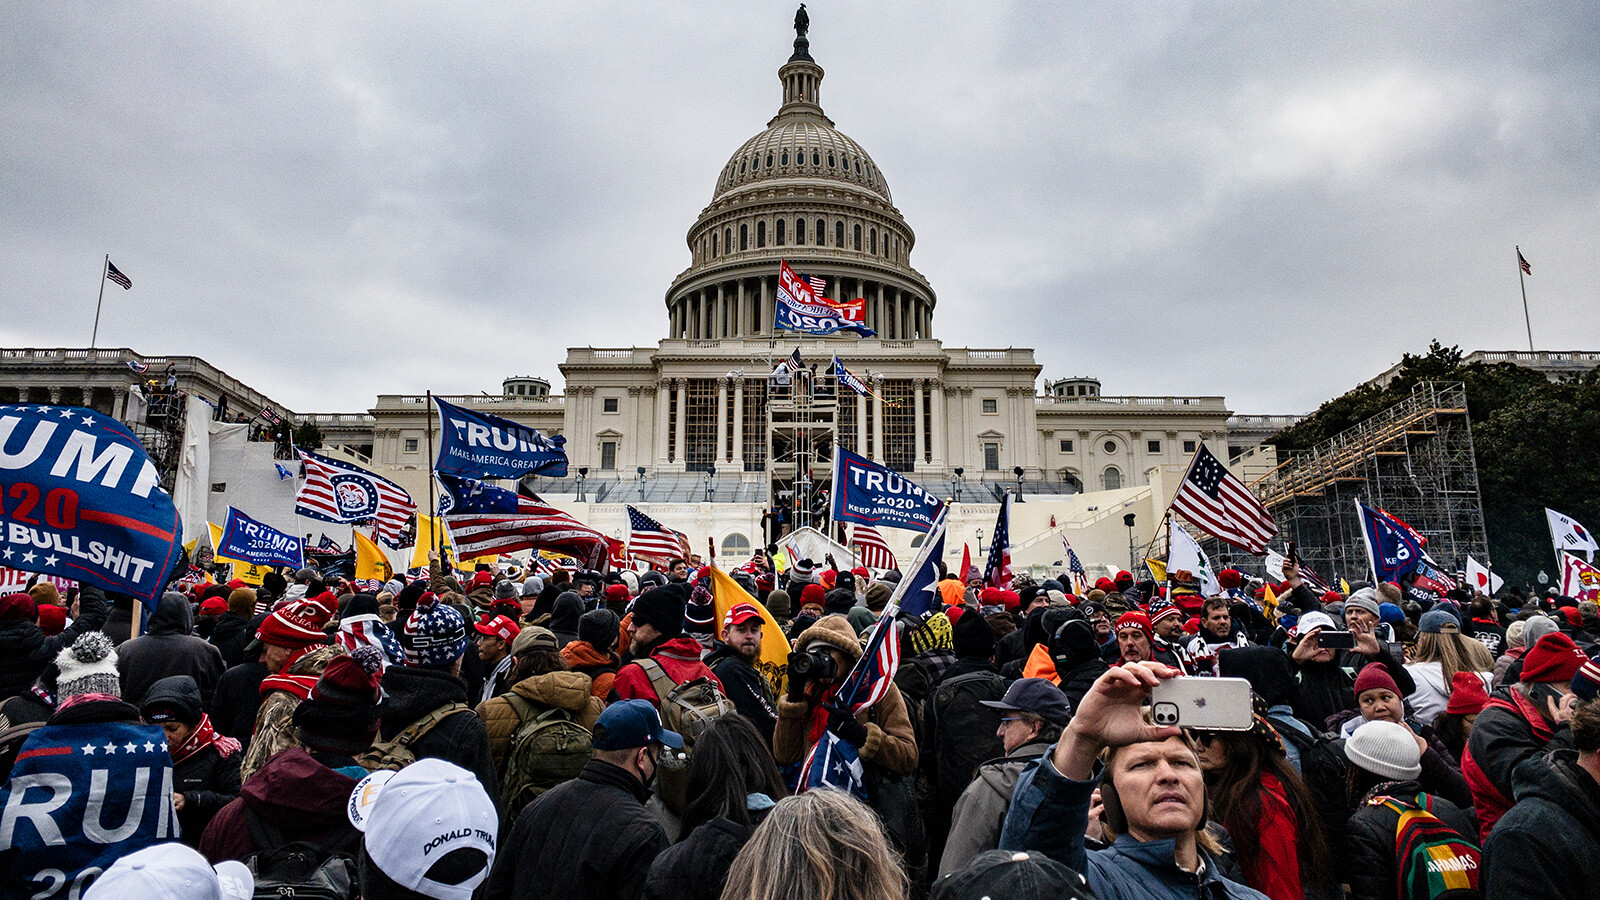 Federal judge rejects comparisons between Capitol insurrection and racial justice unrest